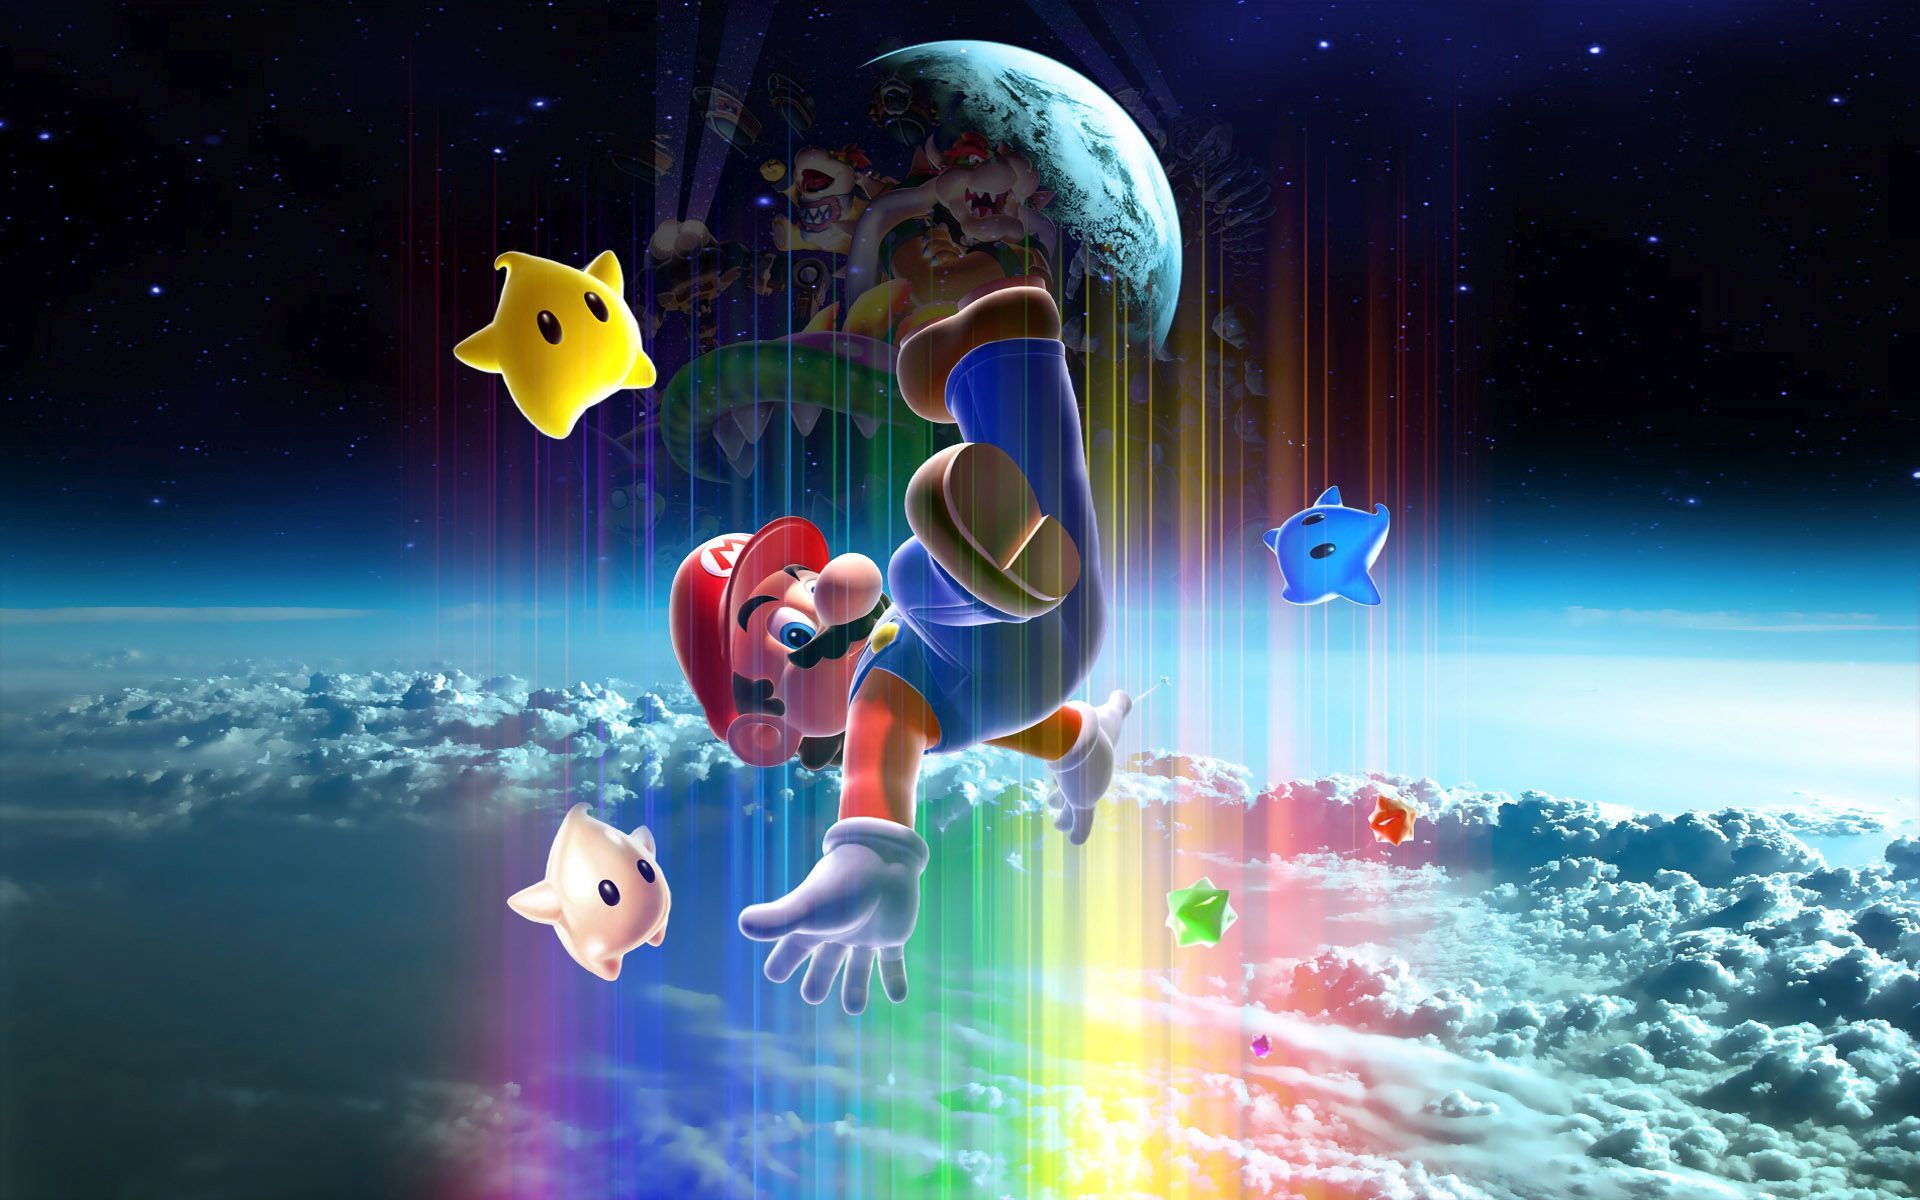 Download Super Mario Galaxy Wallpaper Gallery